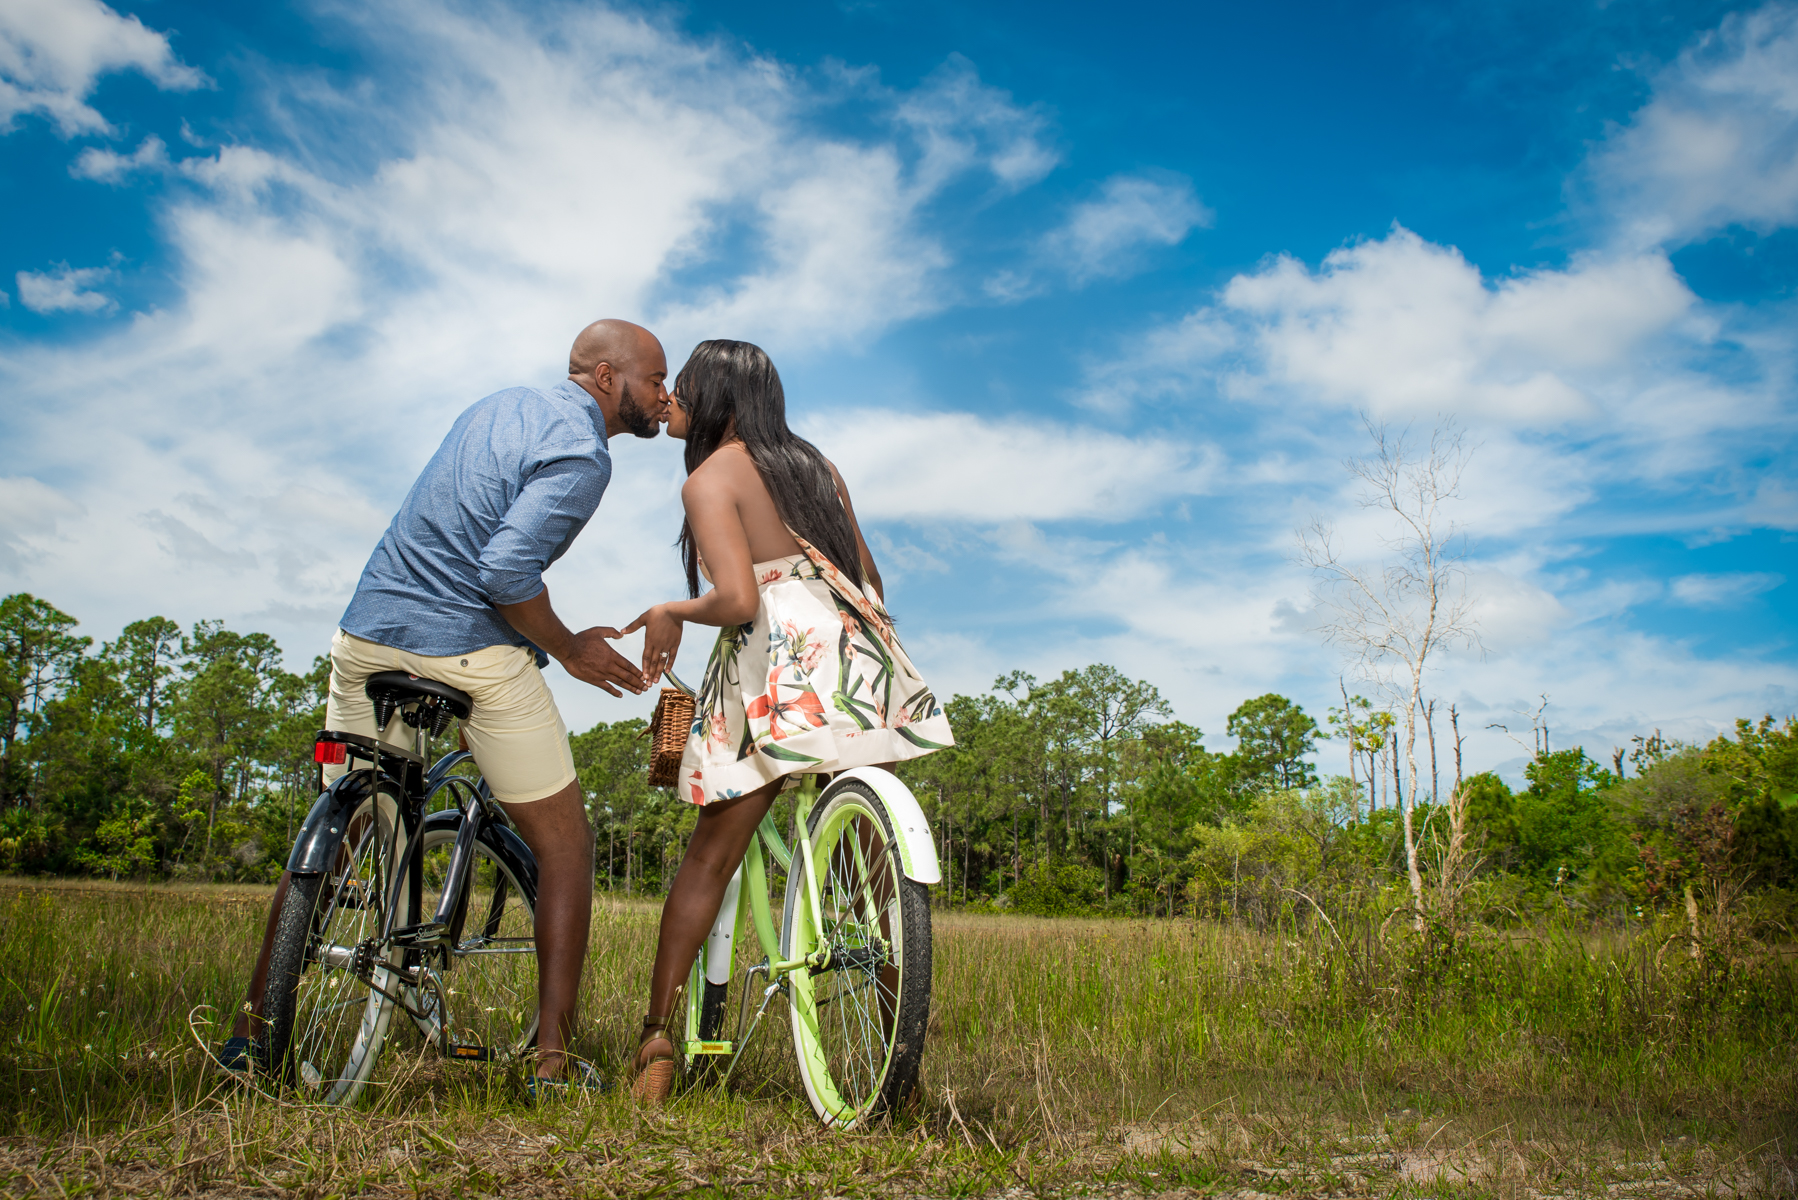 On location photos for couples in South Florida.